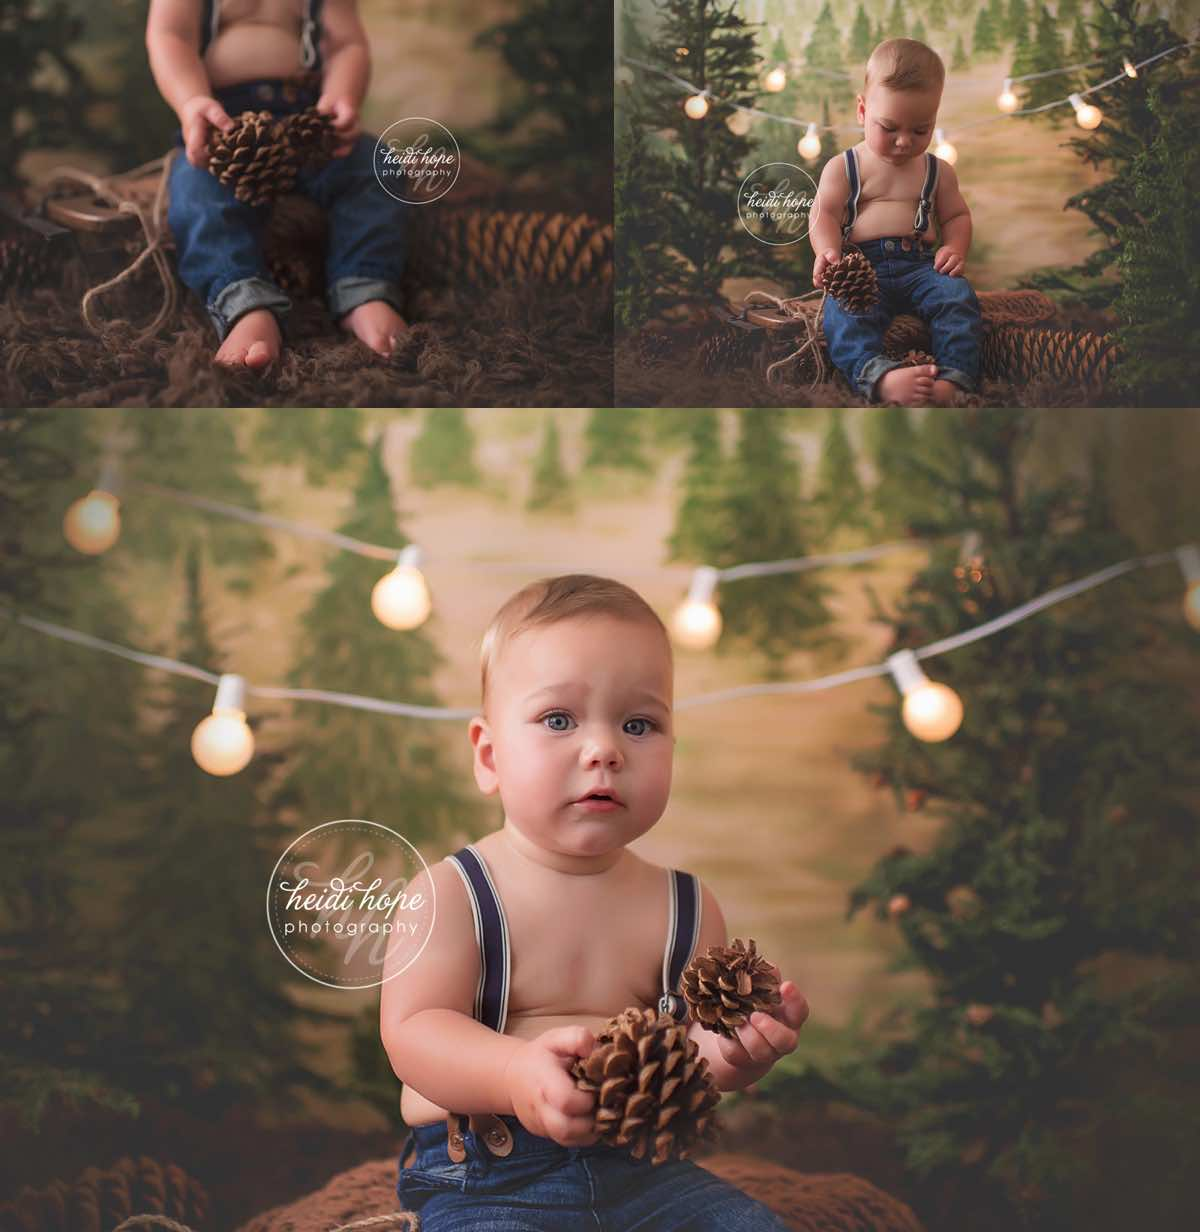 heidi hope backdrop rustic pine tree farm mini session holiday christmas camping 8